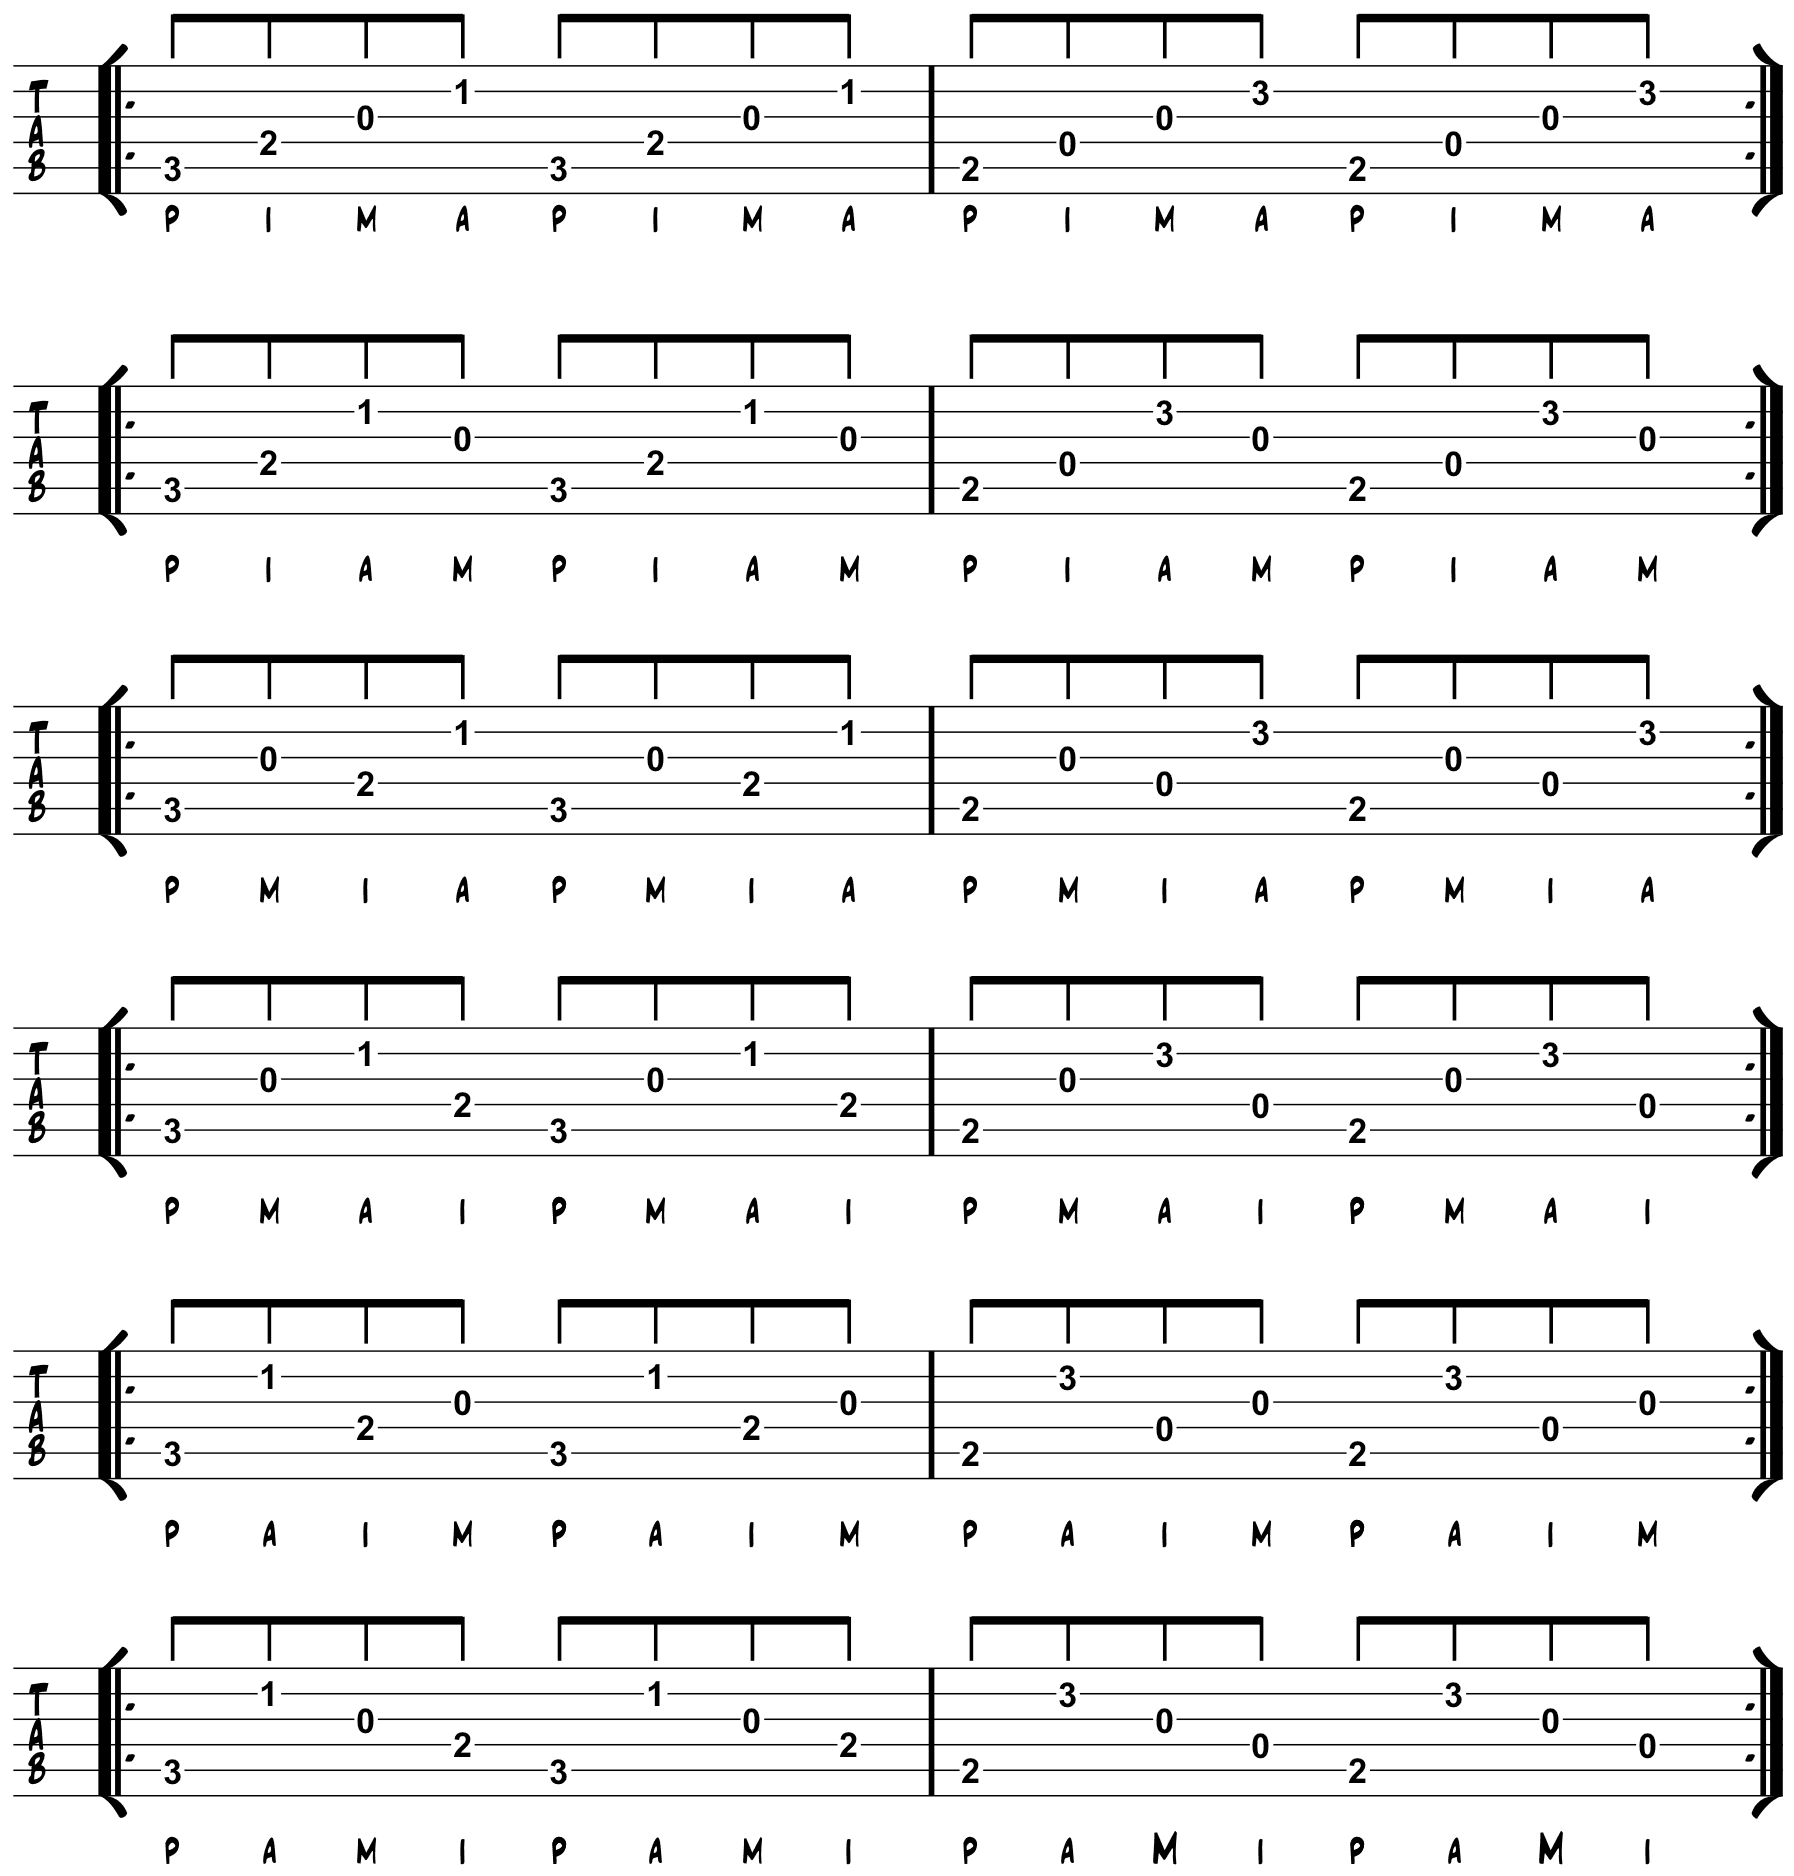 Fingerpicking Pattern - Thumb